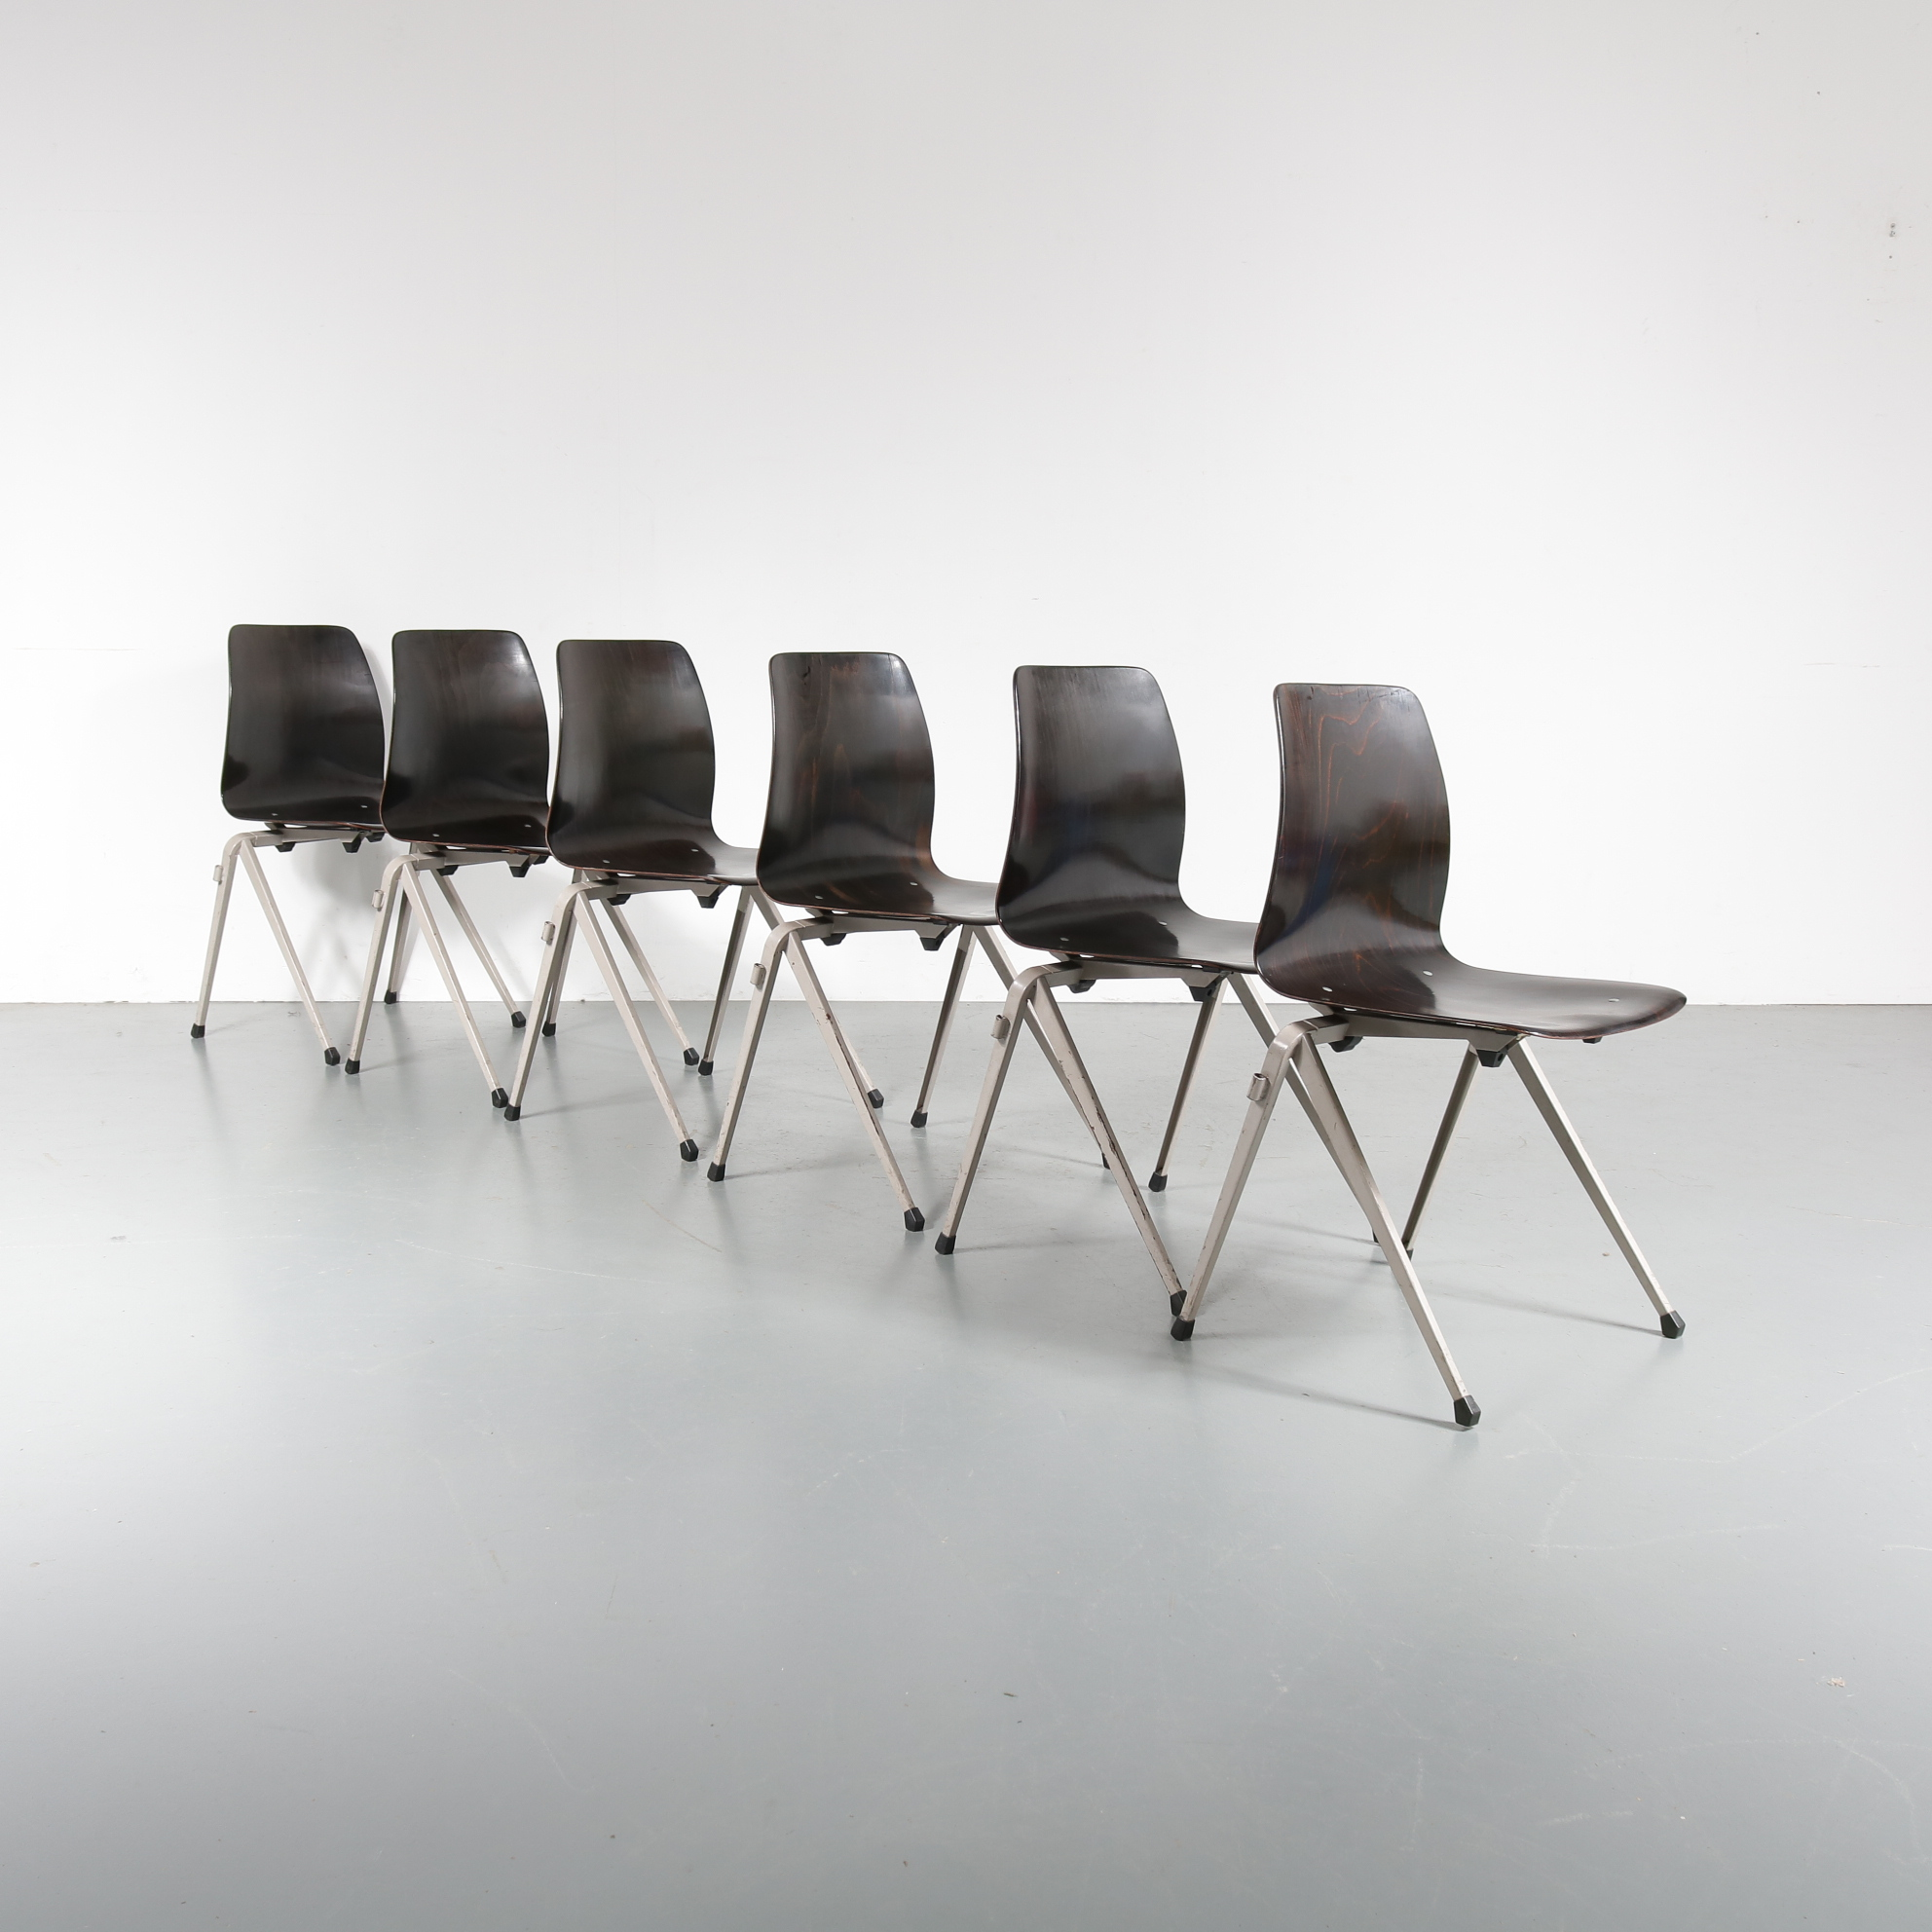 Large Stock of Galvanitas S22 Stackable Dining Chairs, circa 1970